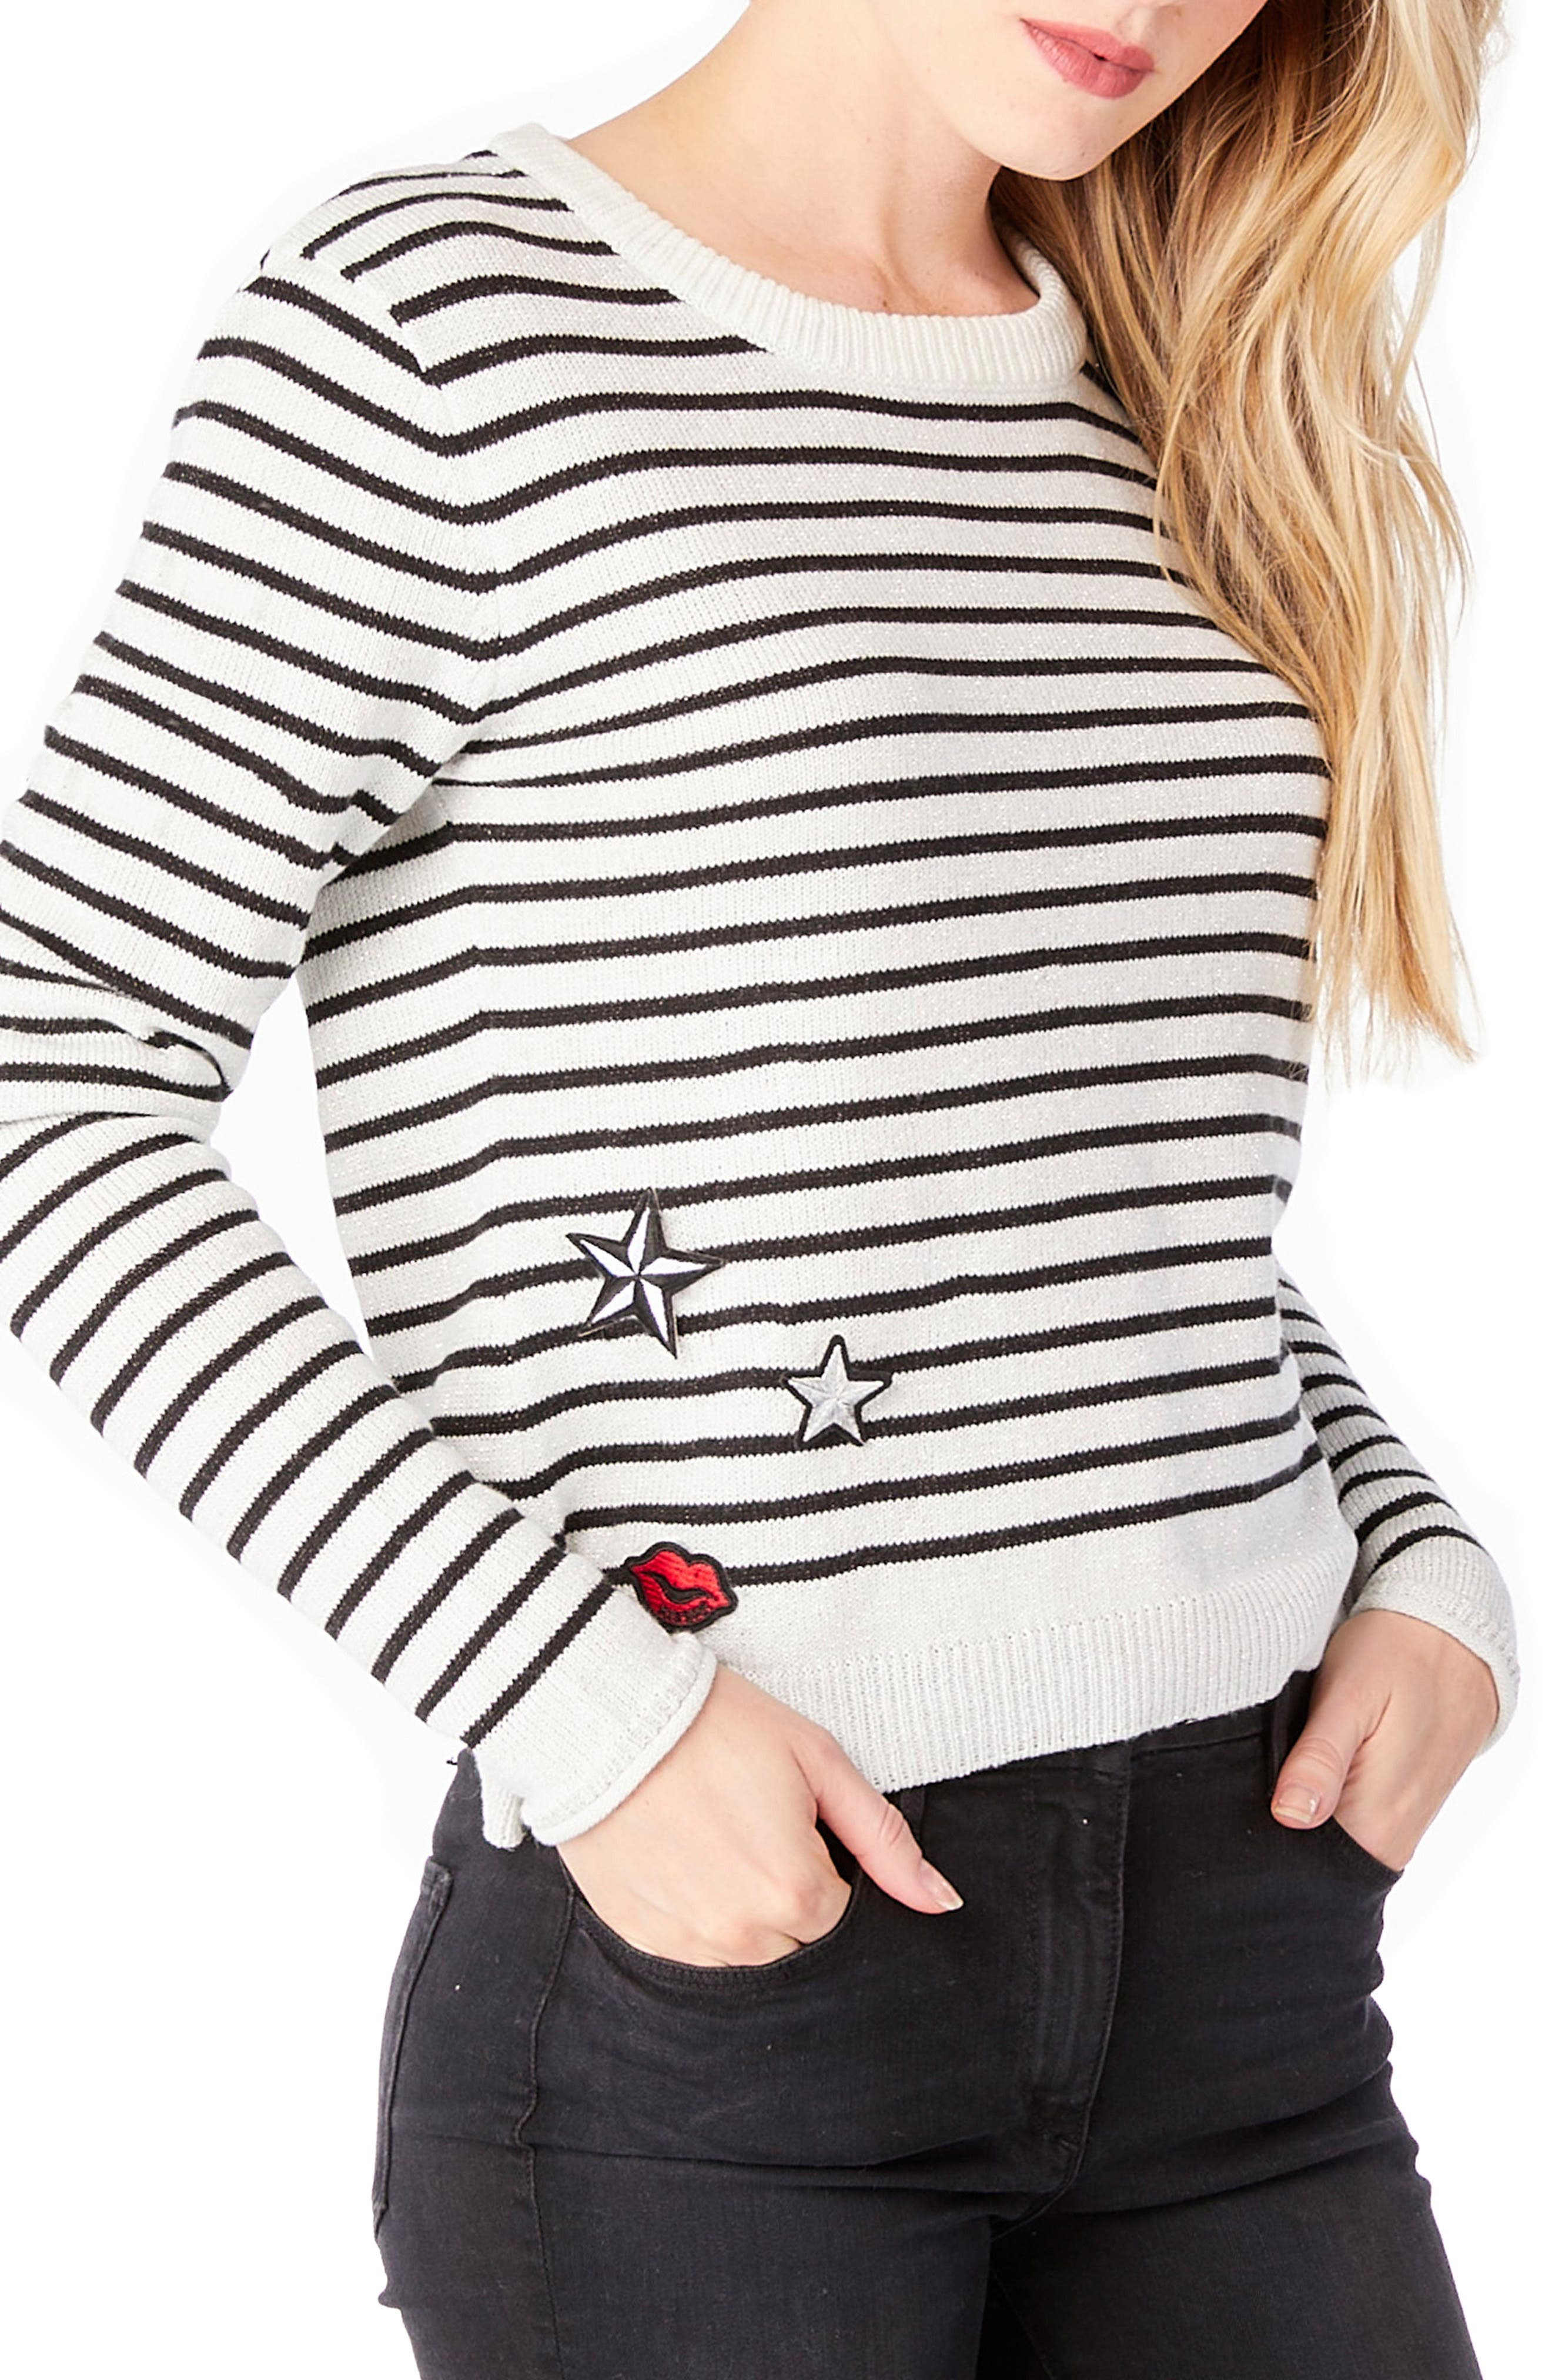 Stripe Patch Crewneck Sweater,                             Alternate thumbnail 3, color,                             White/ Black